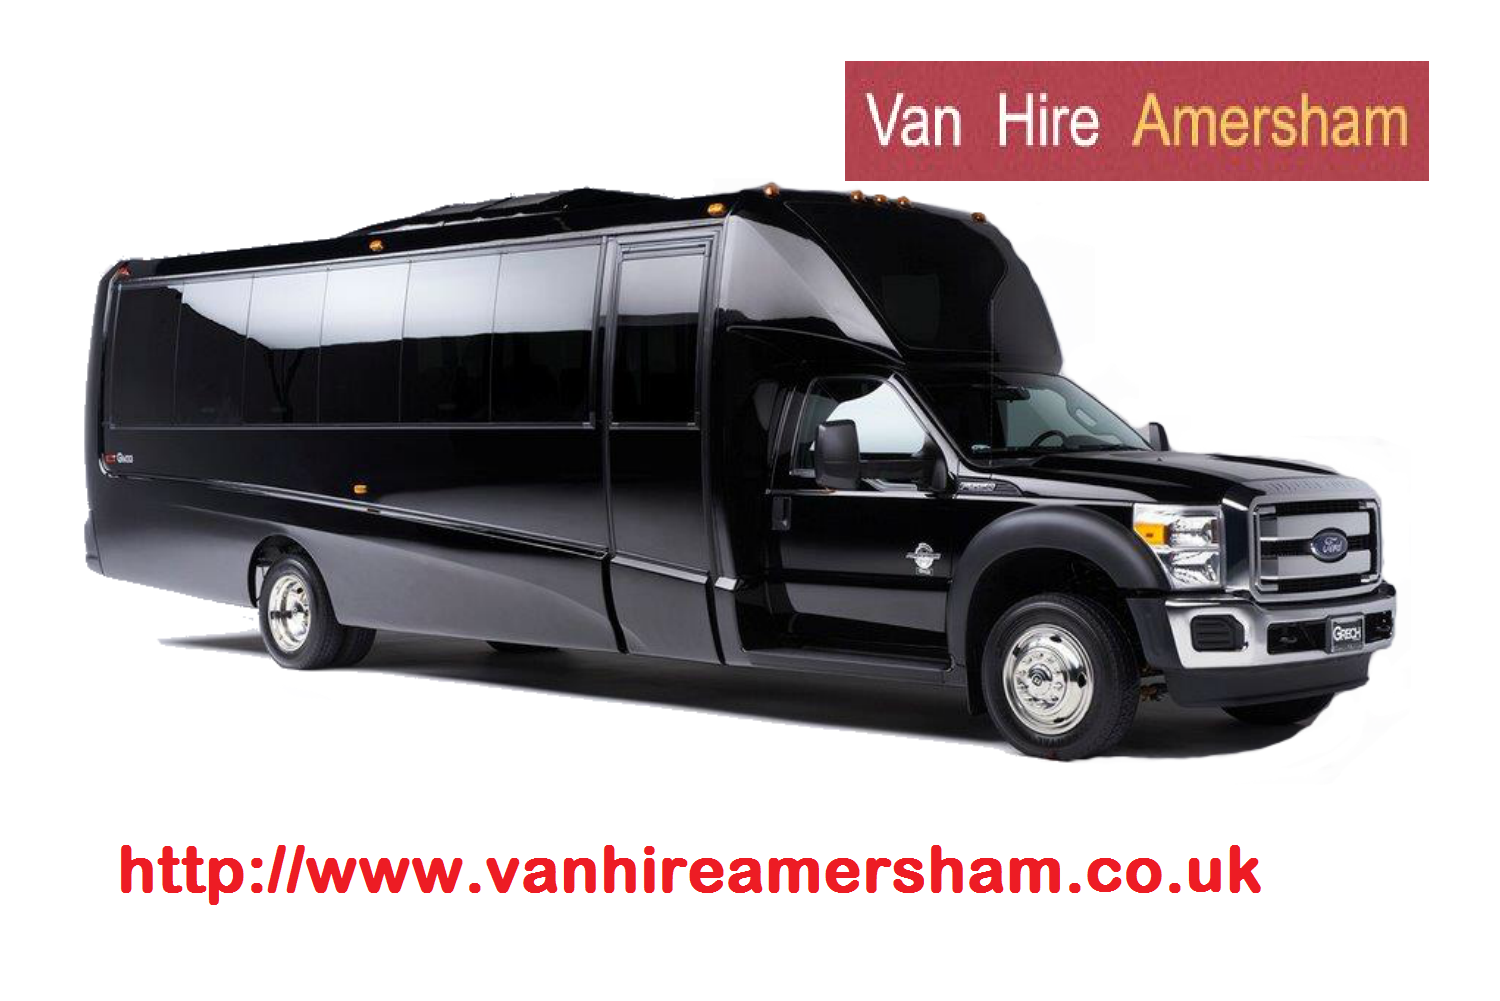 Pin by caitlin snow on van hire amersham Limousine car